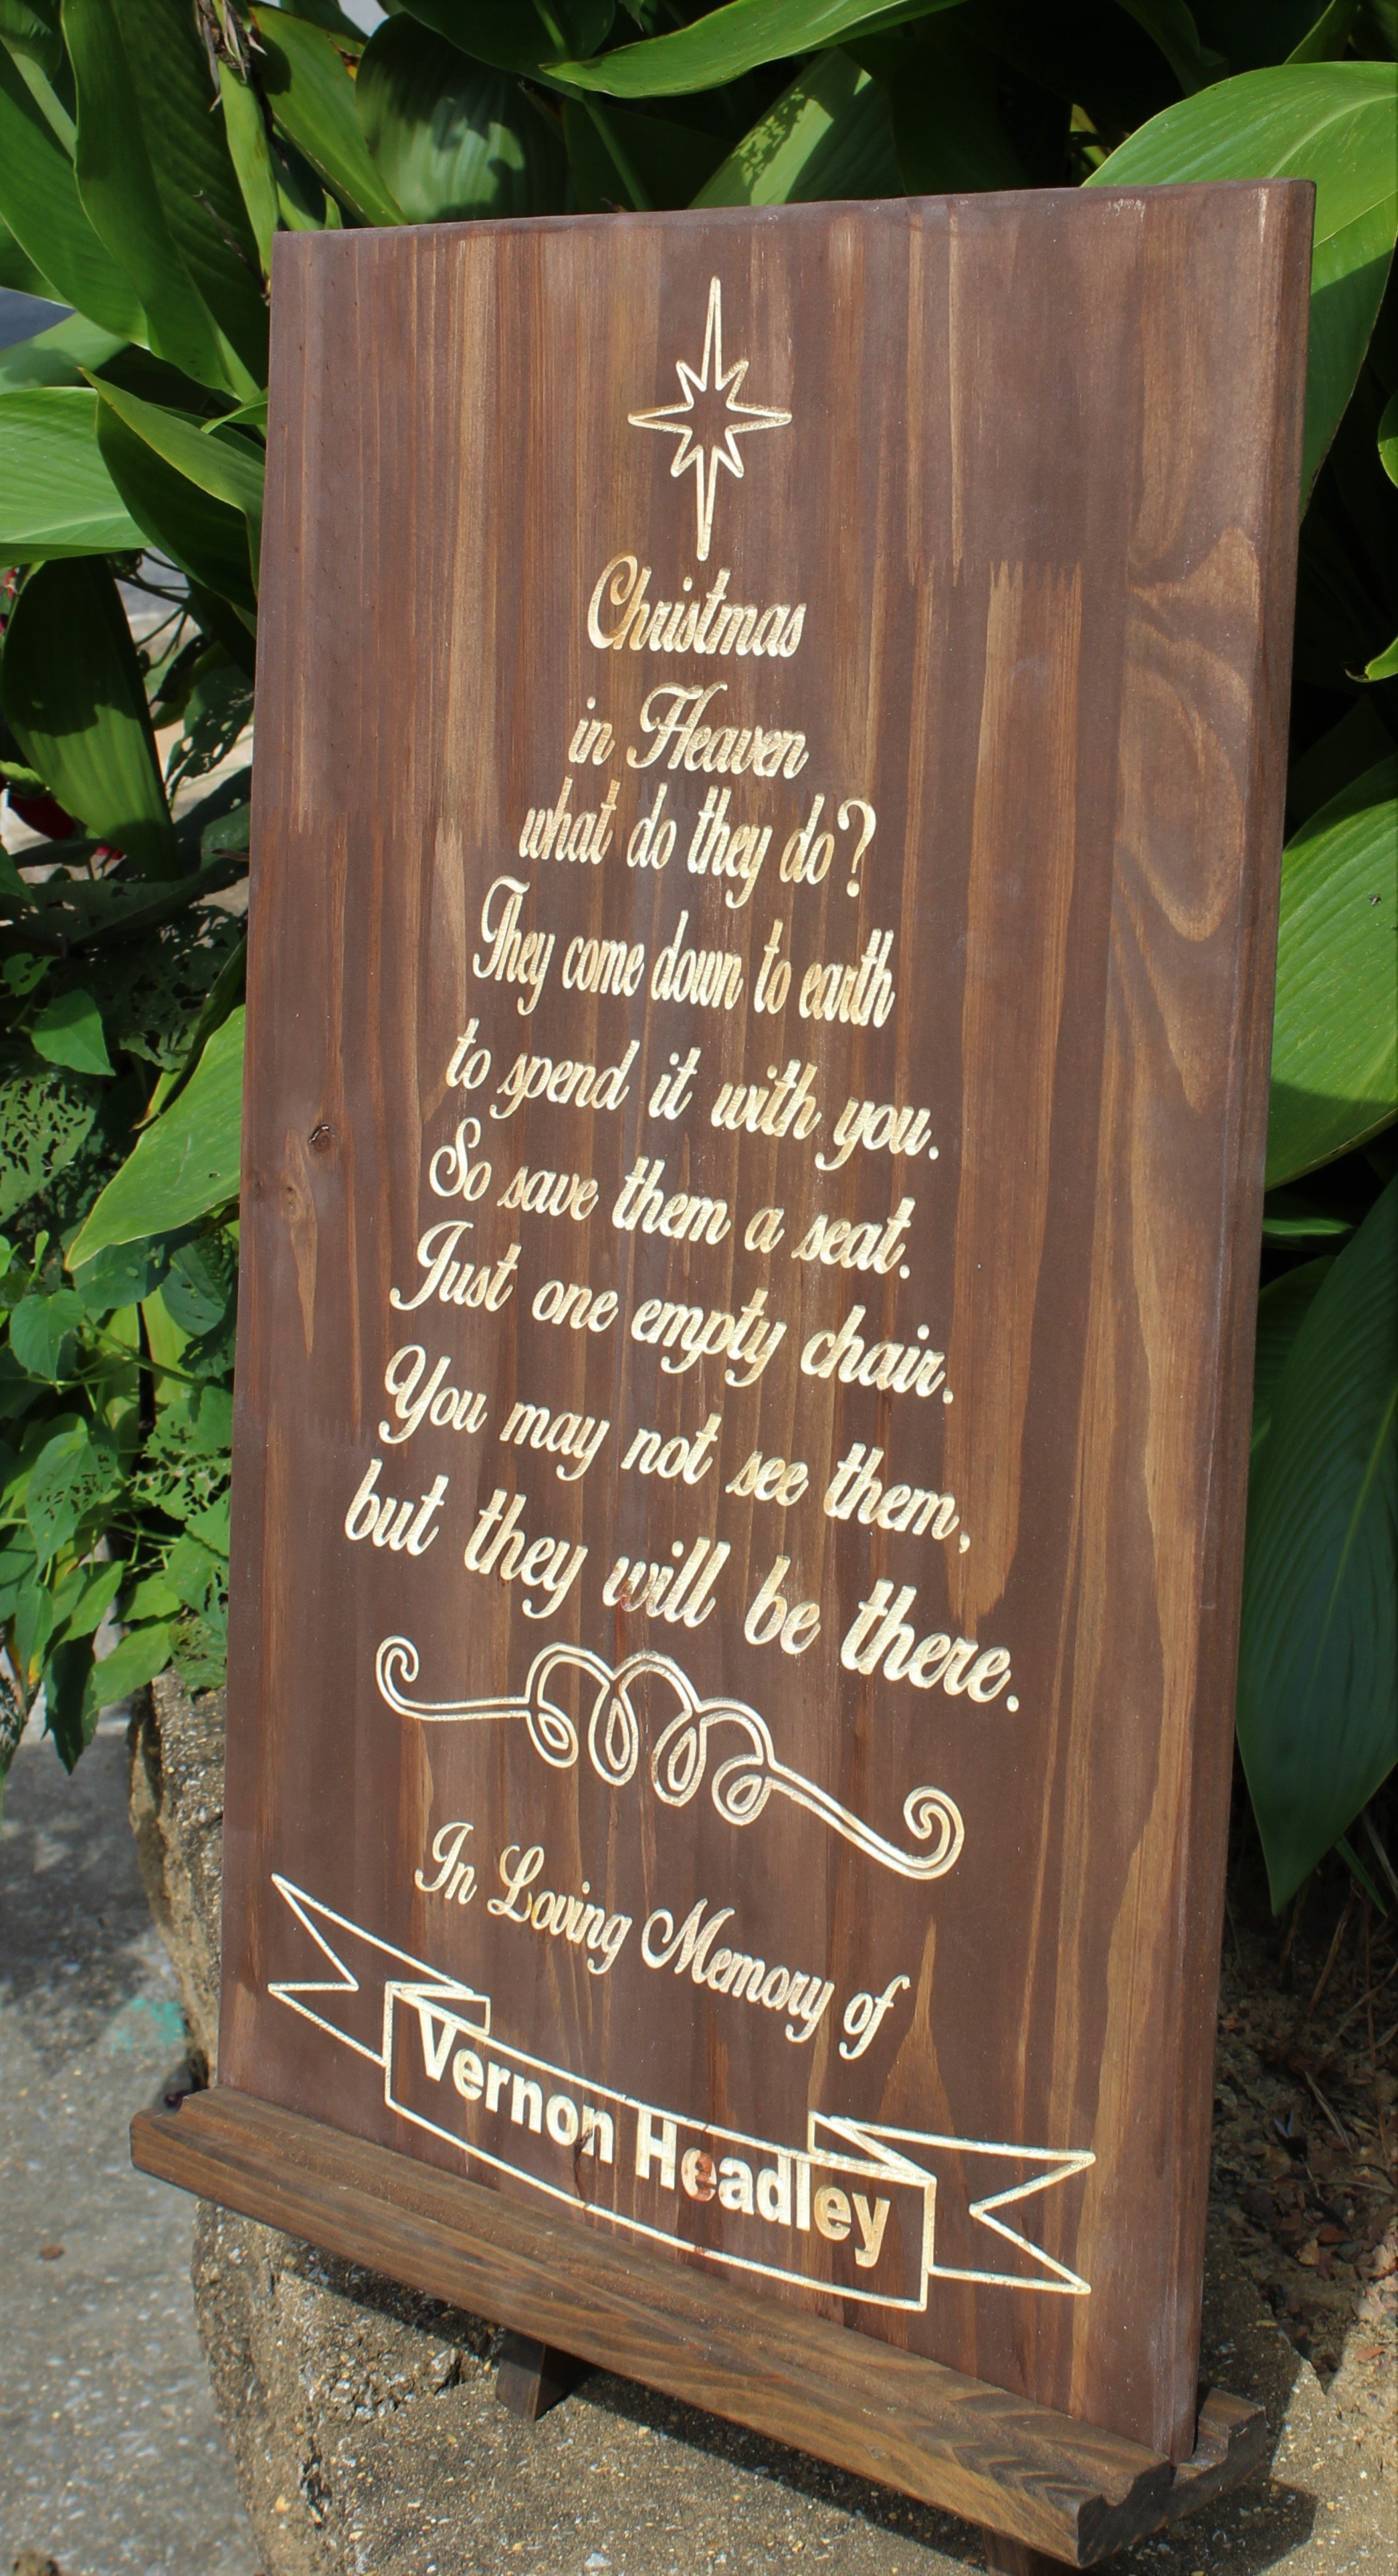 Christmas in heaven wooden sign personalized engraved